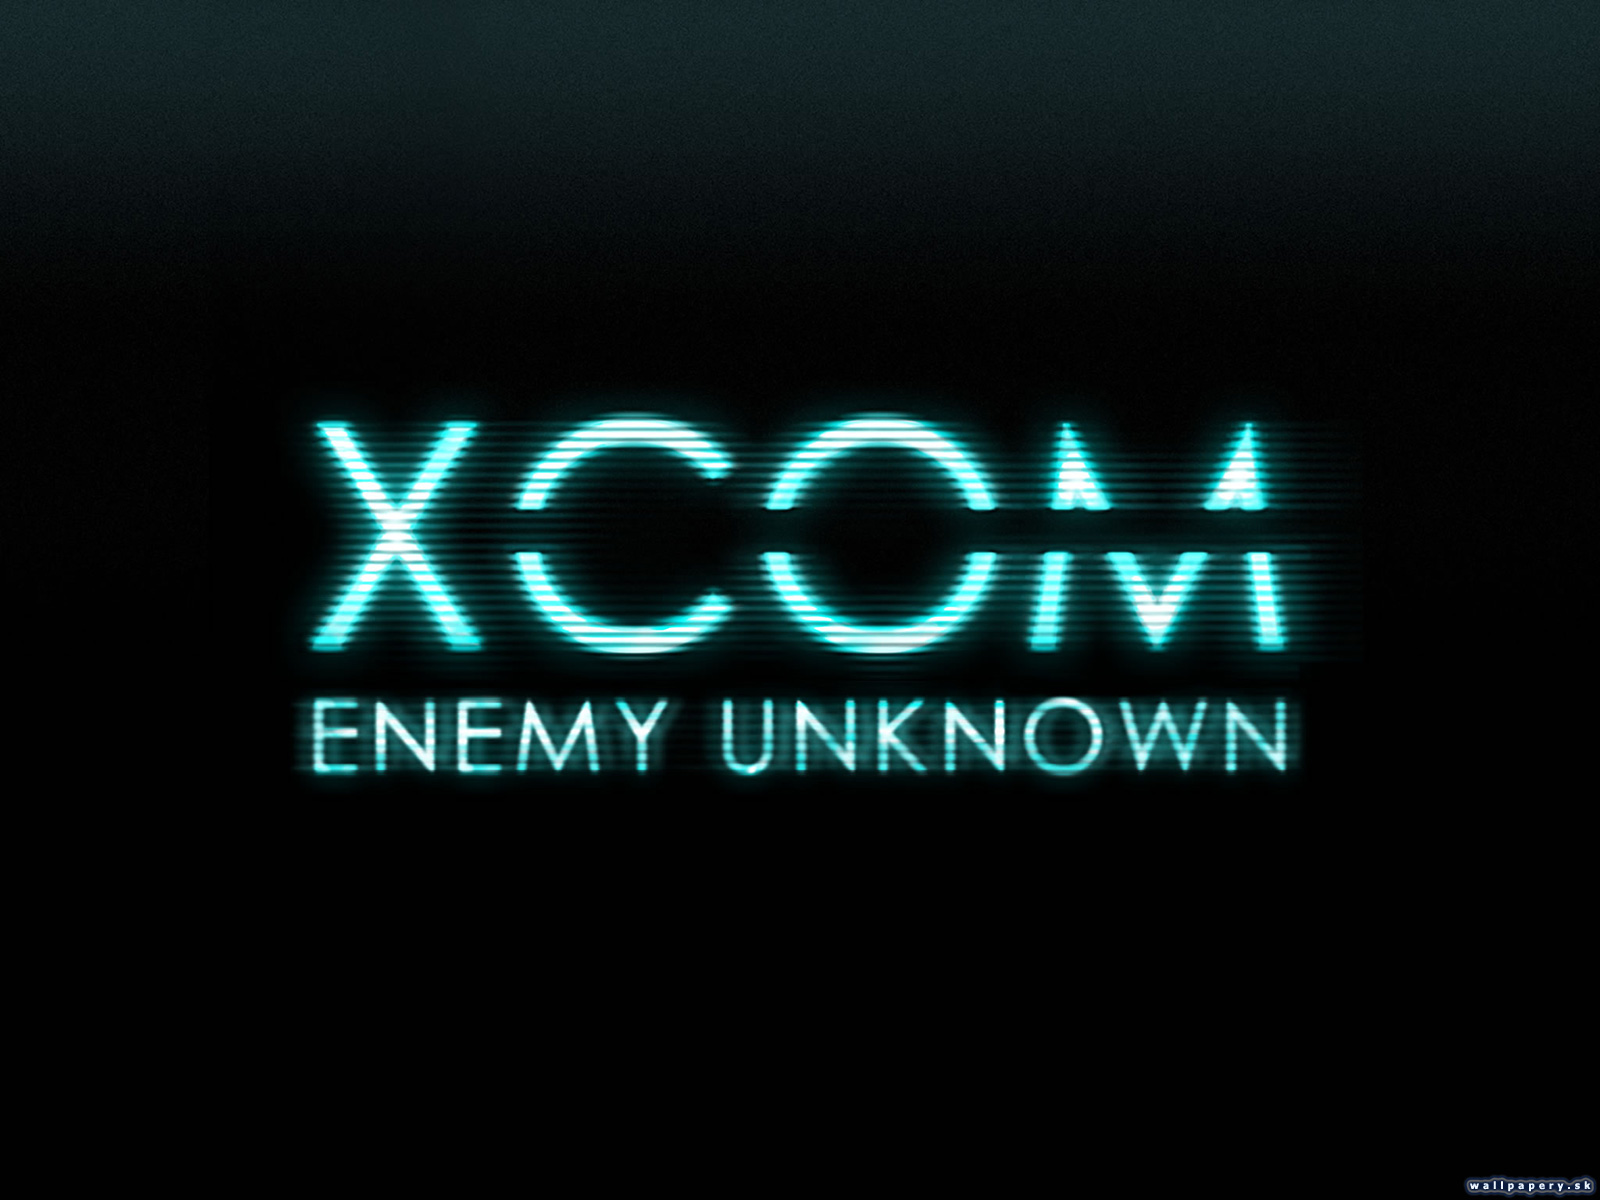 XCOM: Enemy Unknown - wallpaper 8